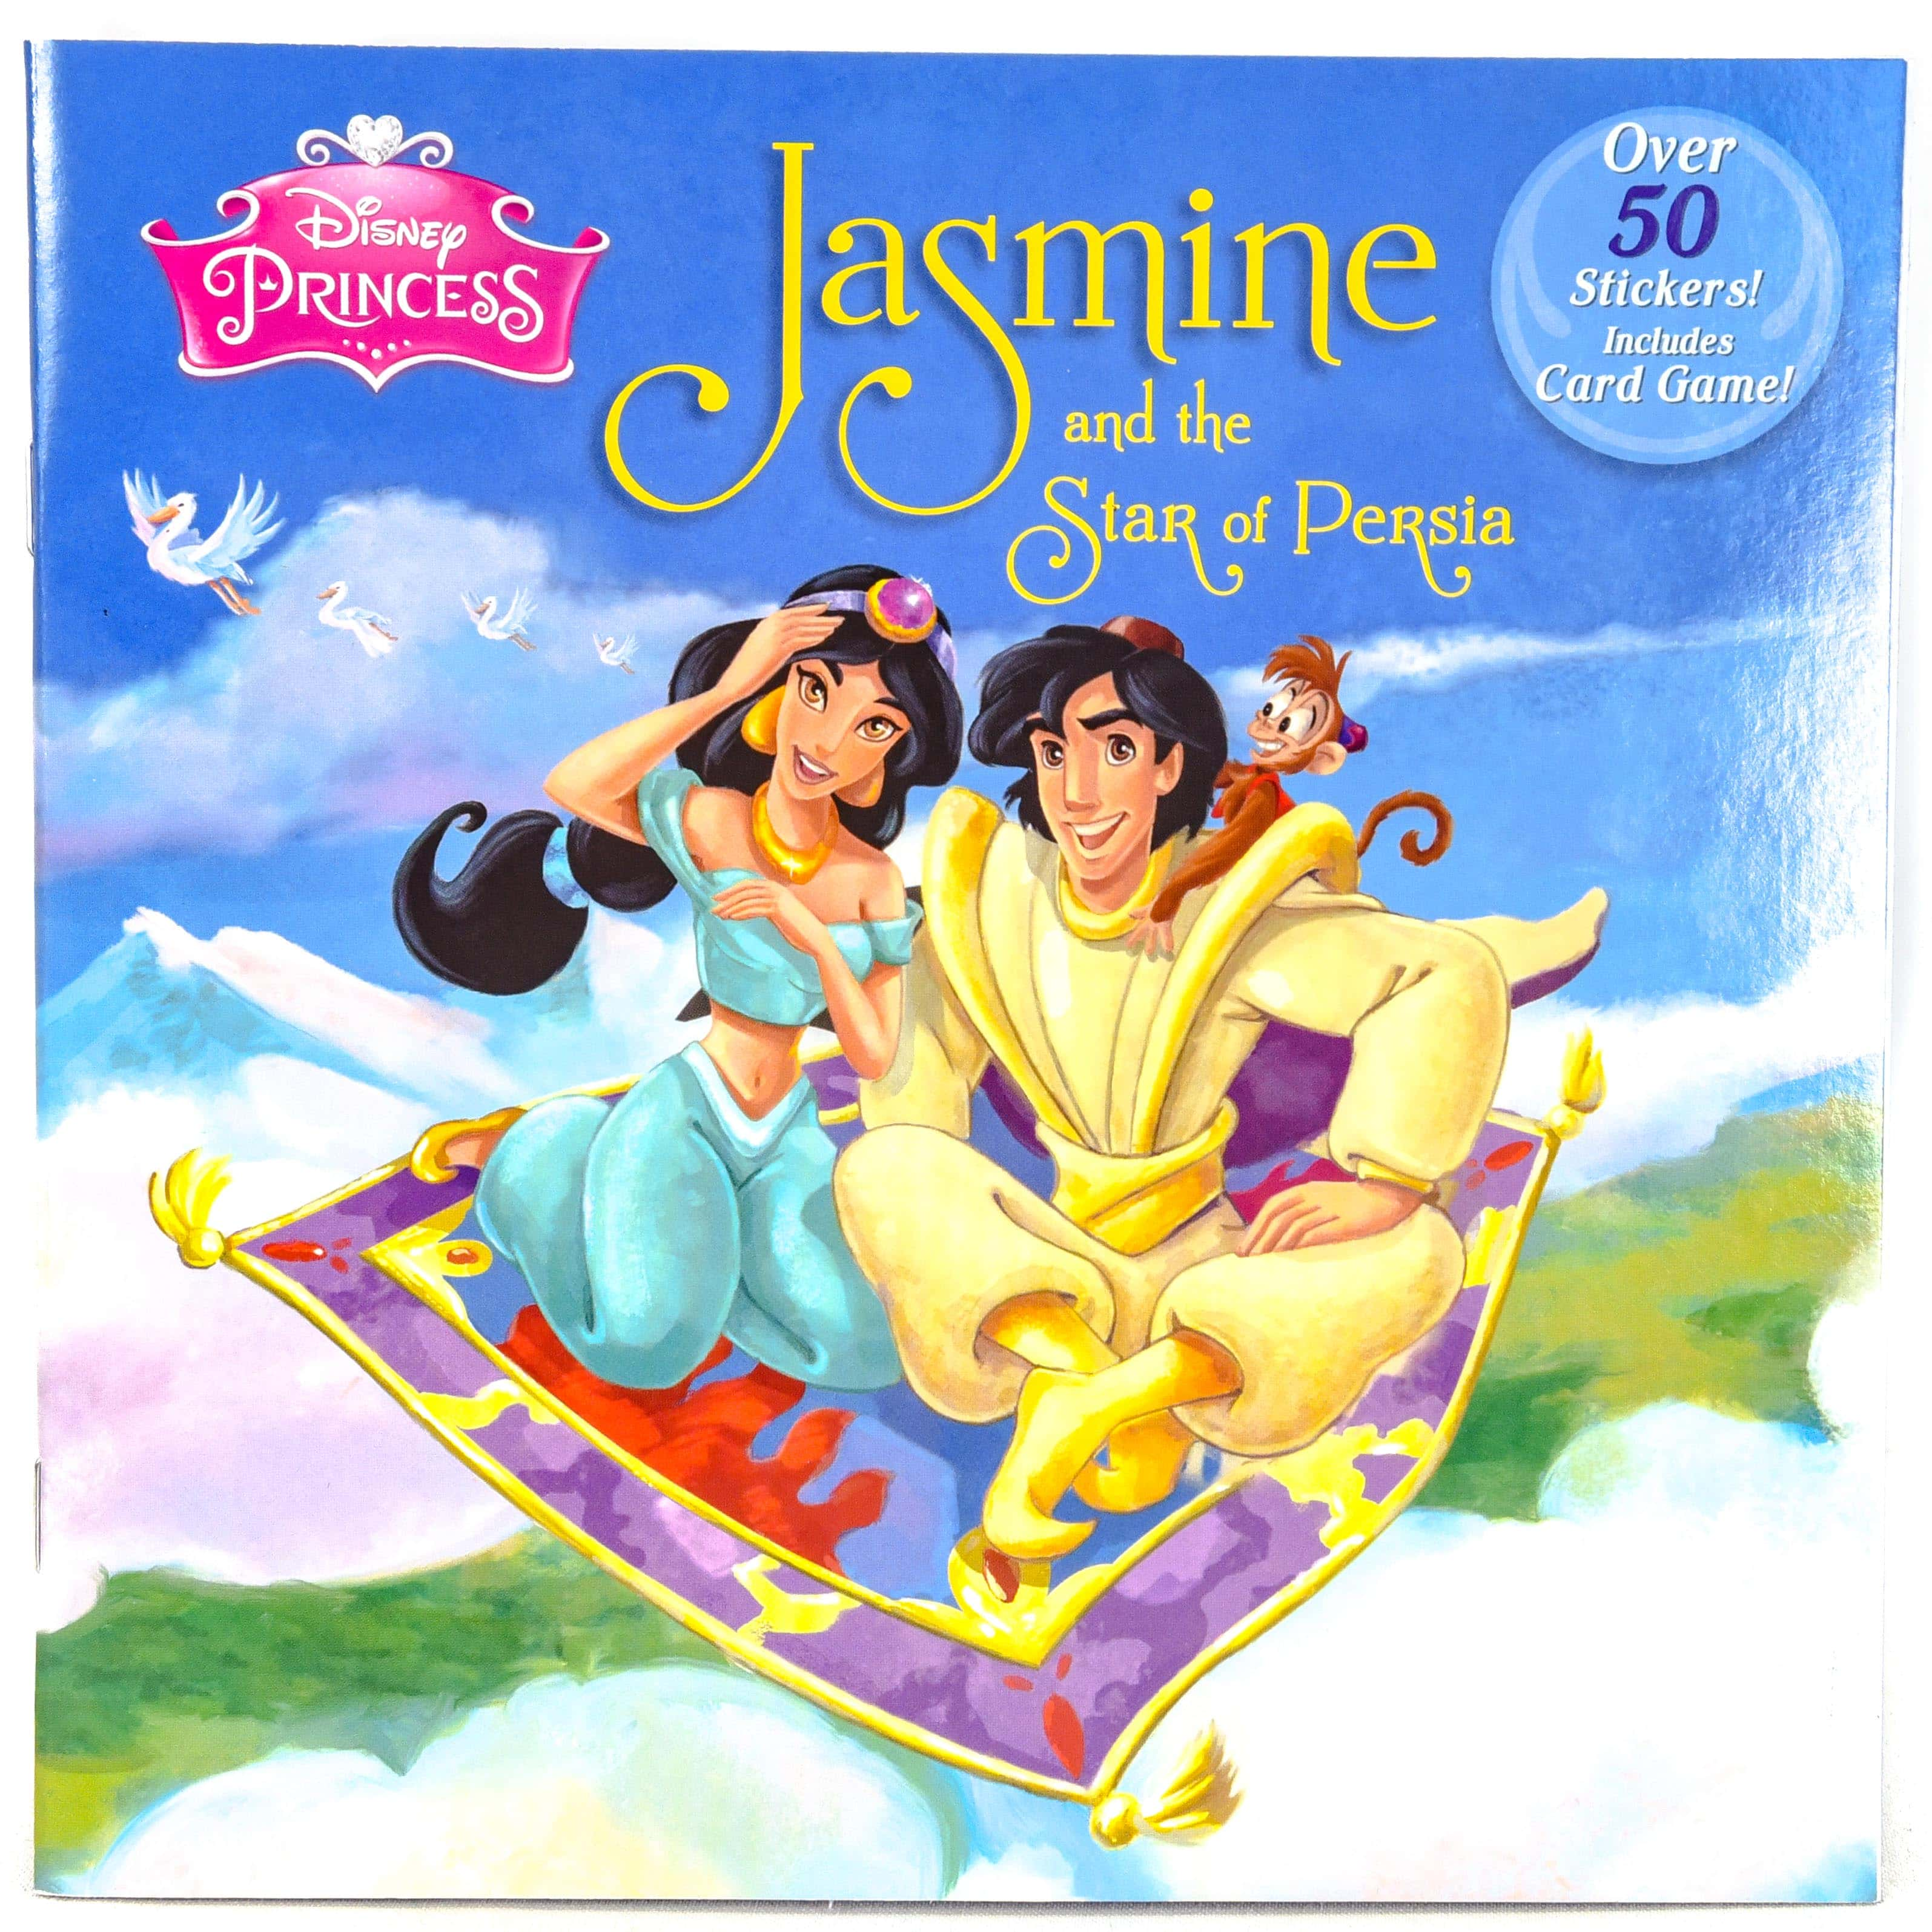 Jasmine And The Star Of Persia Samko And Miko Toy Warehouse